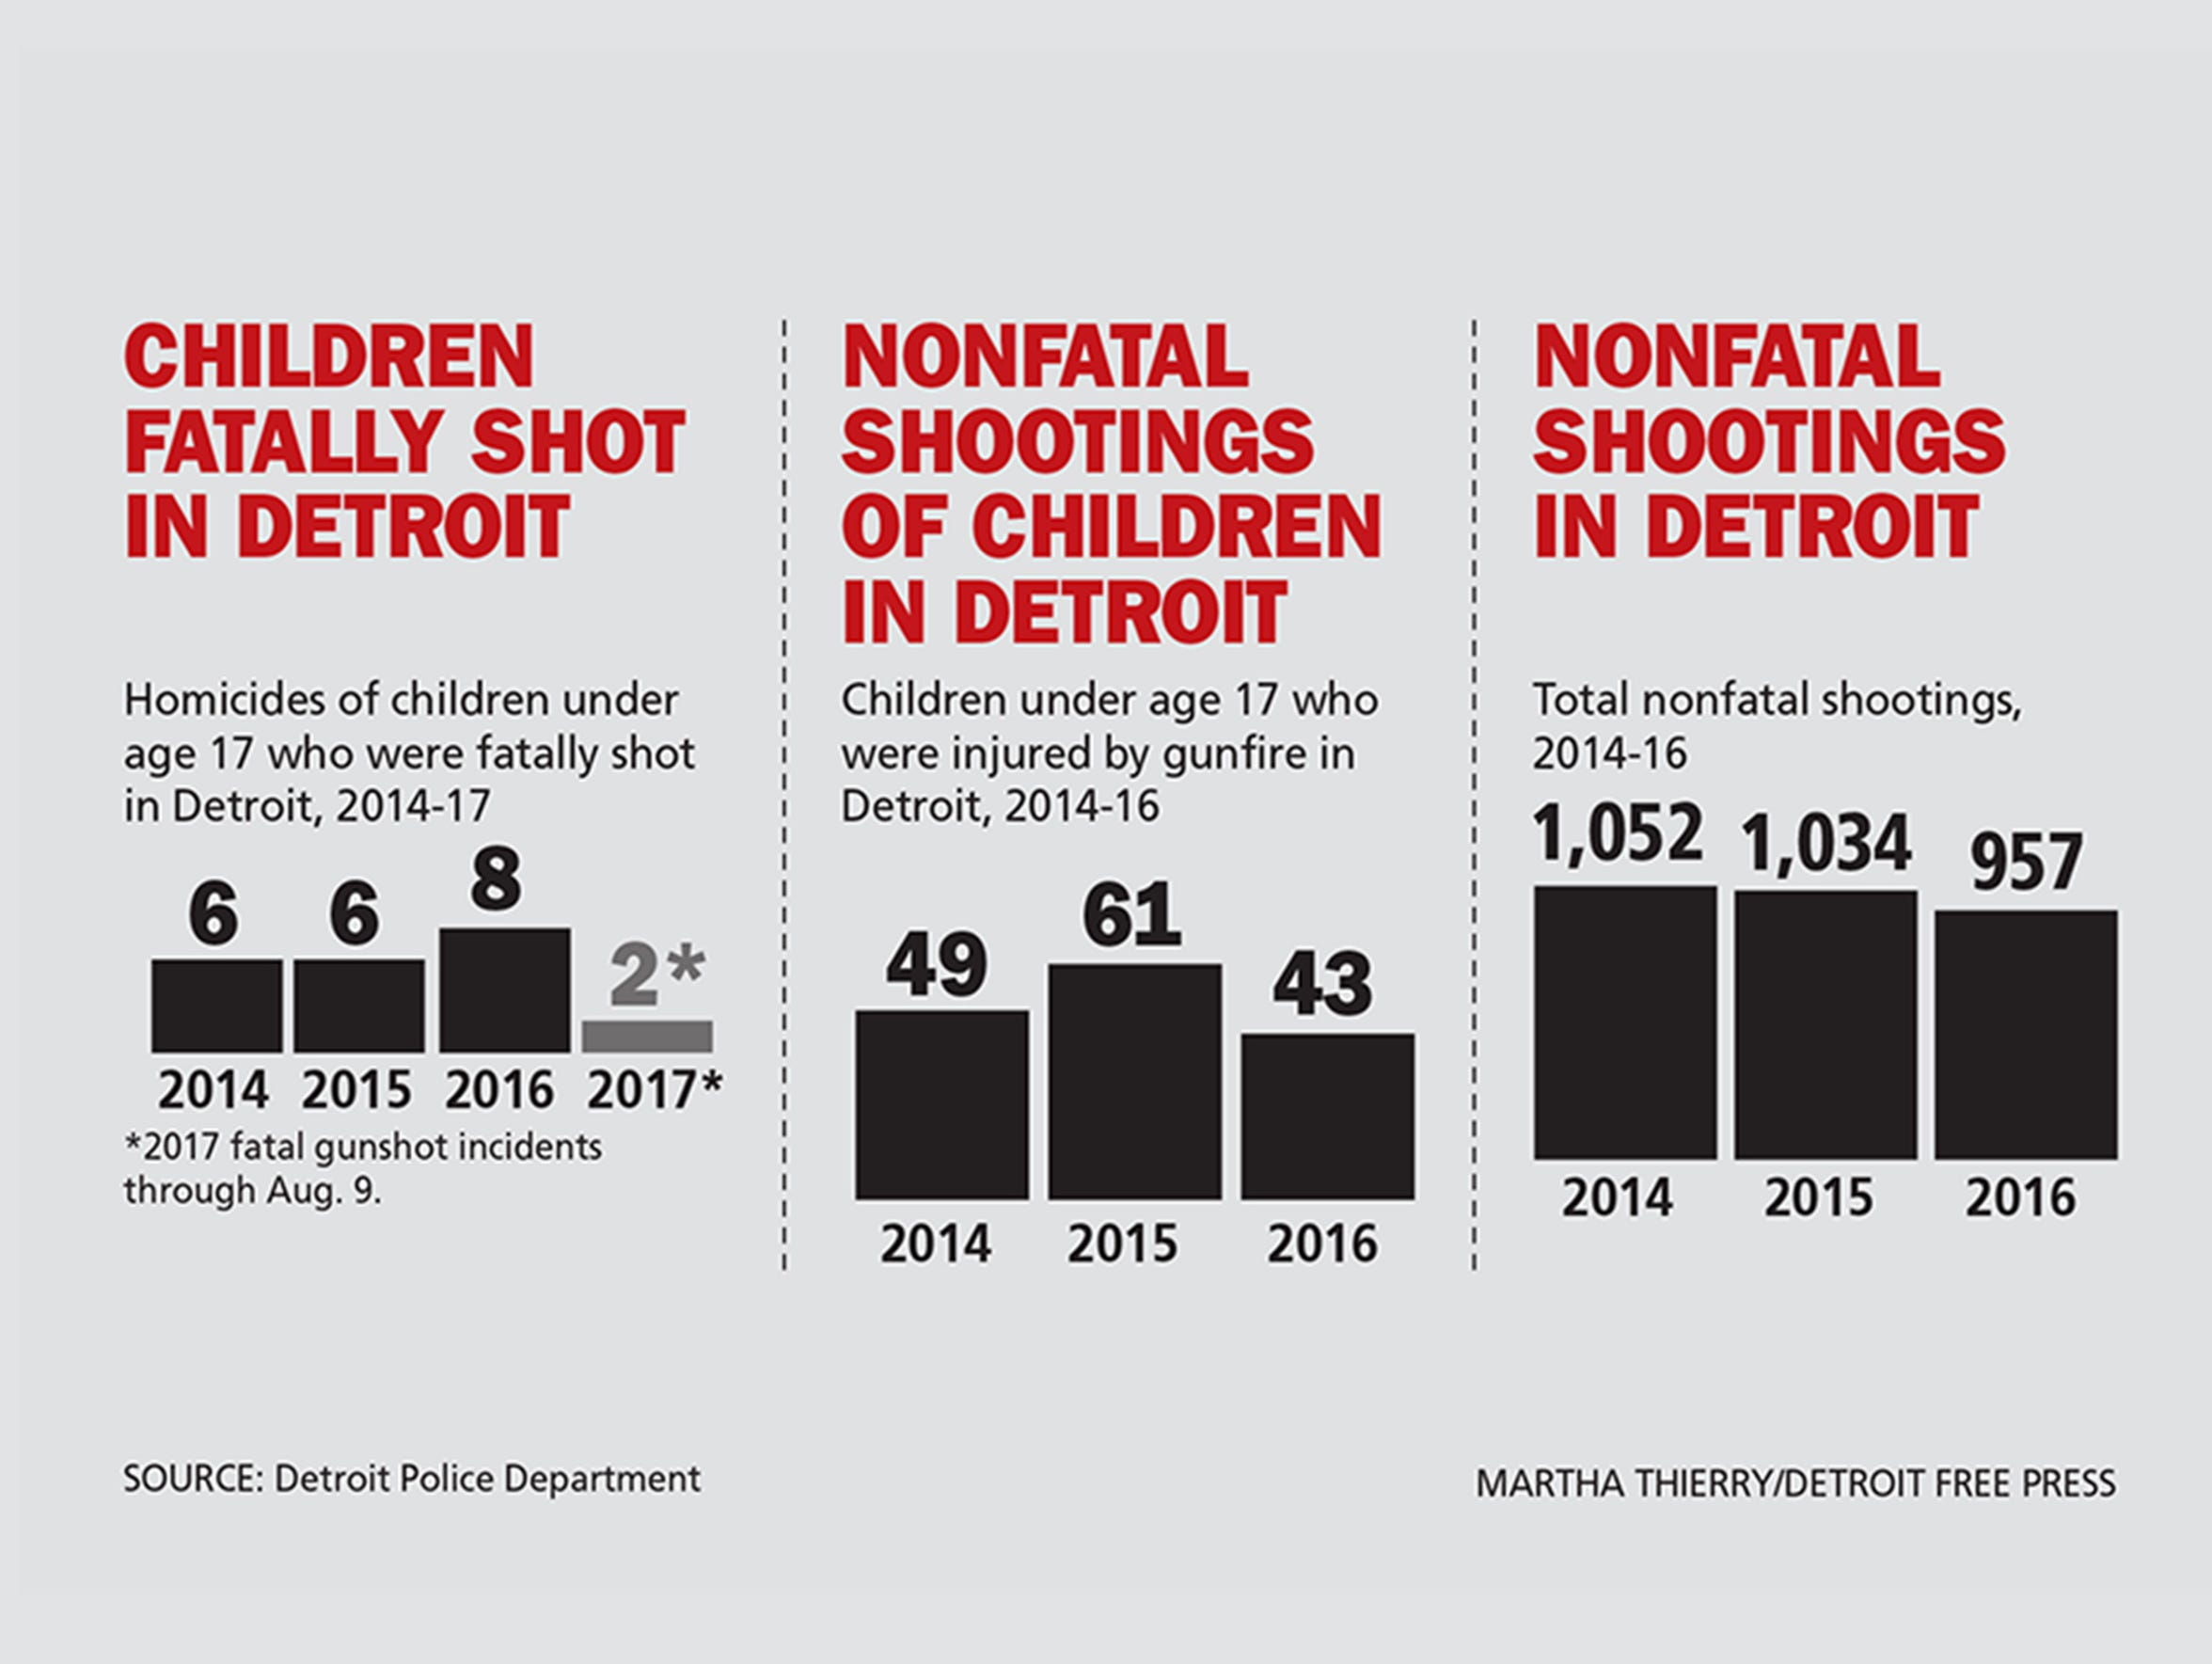 Shootings of children in Detroit.